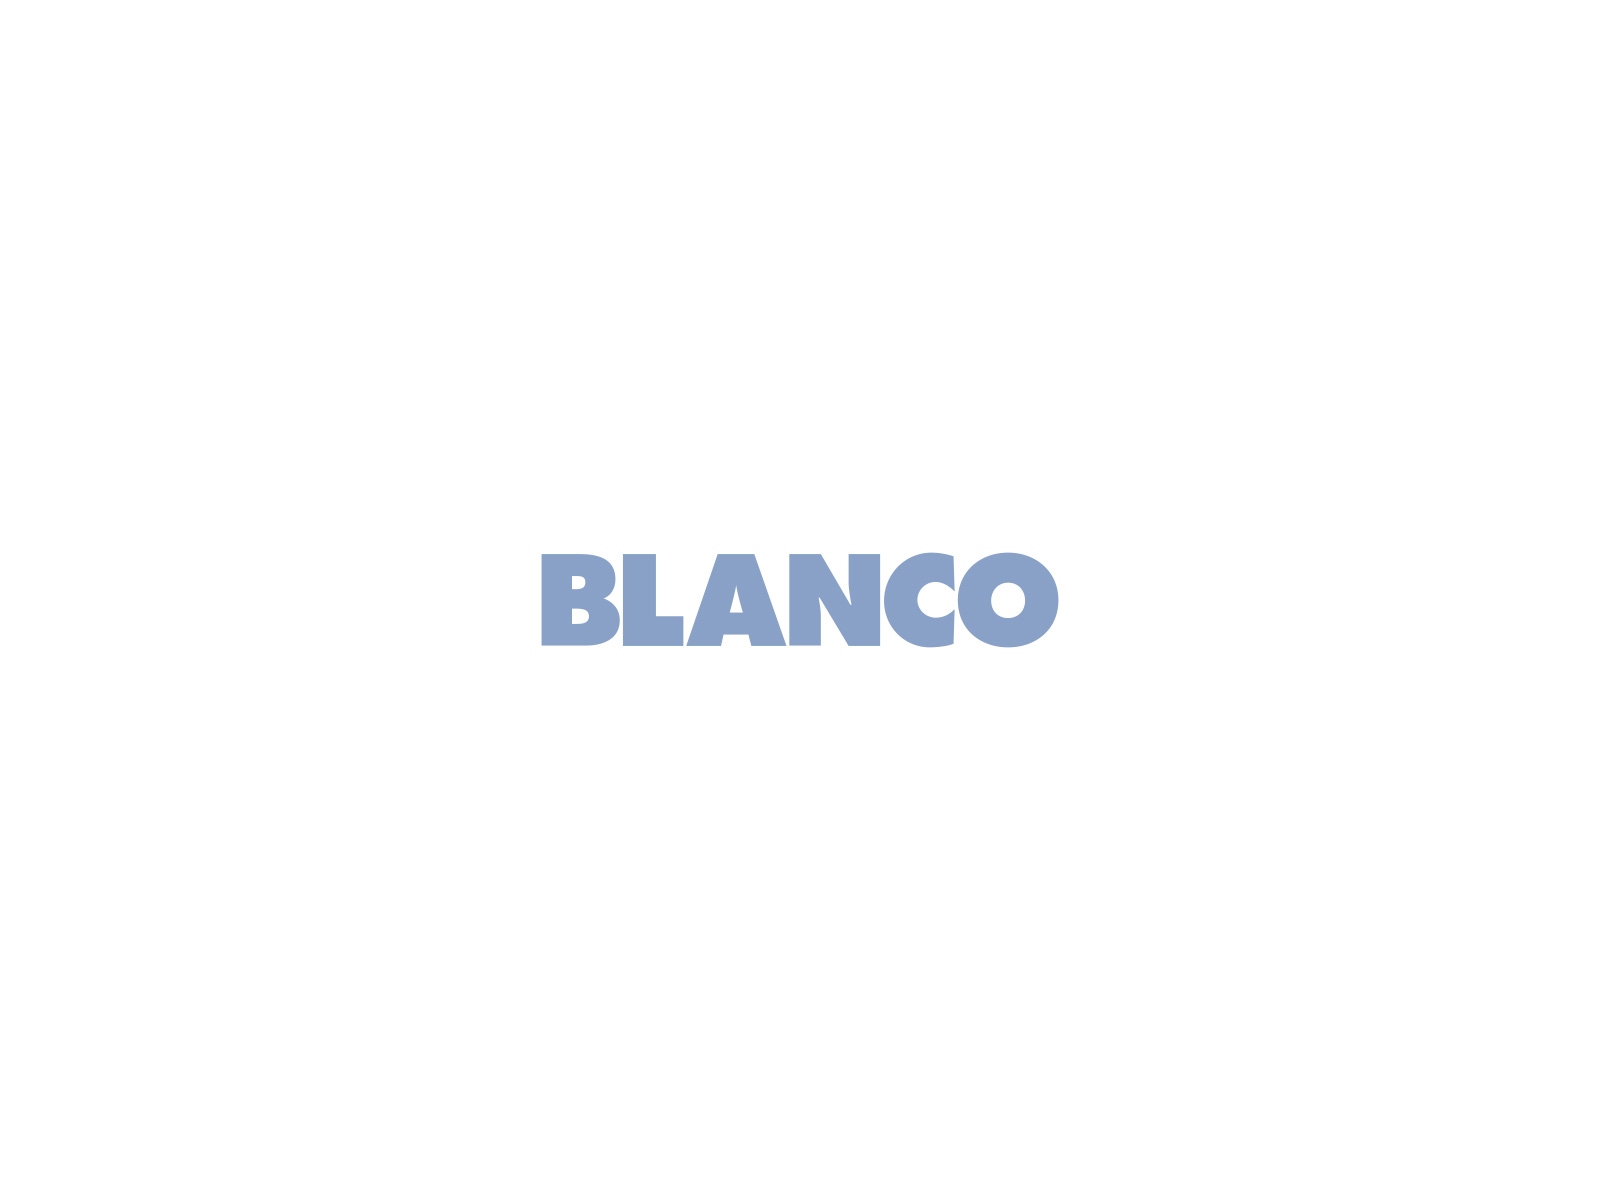 BLANCOLINUS-S HD Hebel links-03840521.jpg